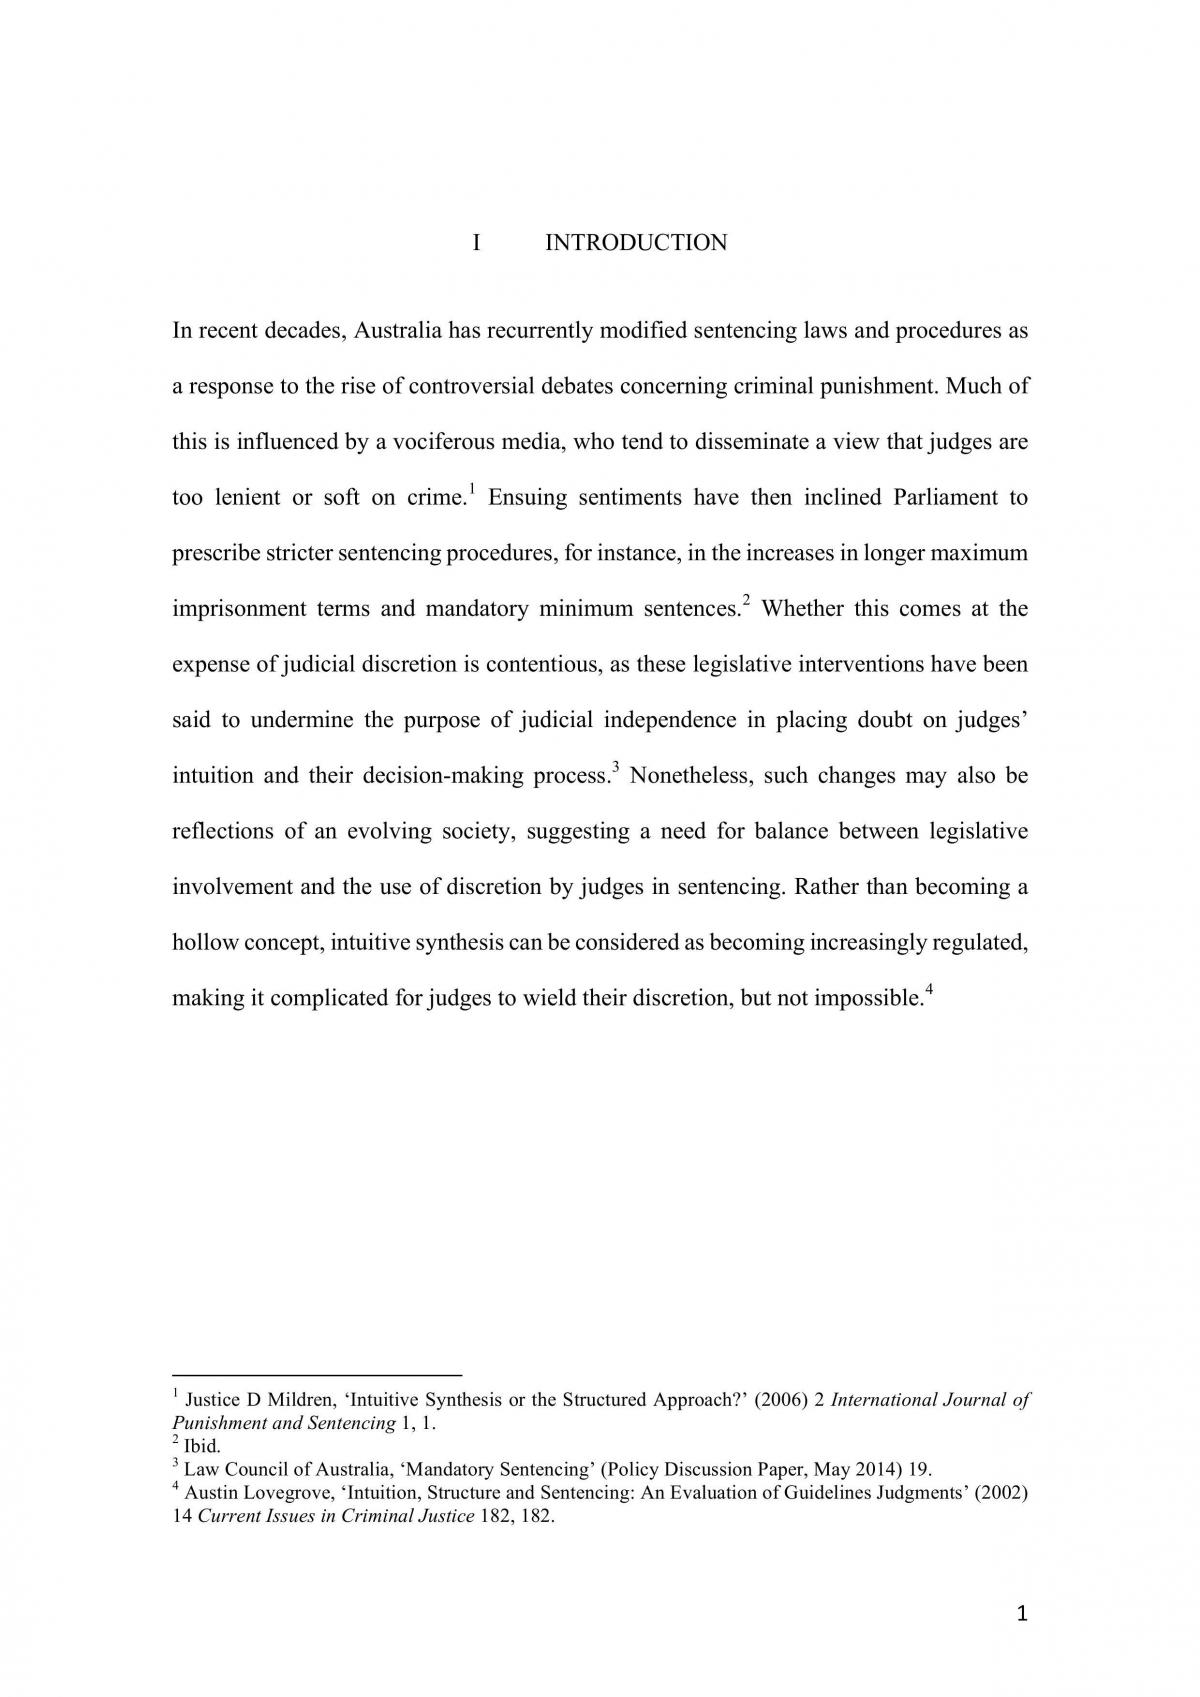 LAWS1022 Research Essay - Page 1